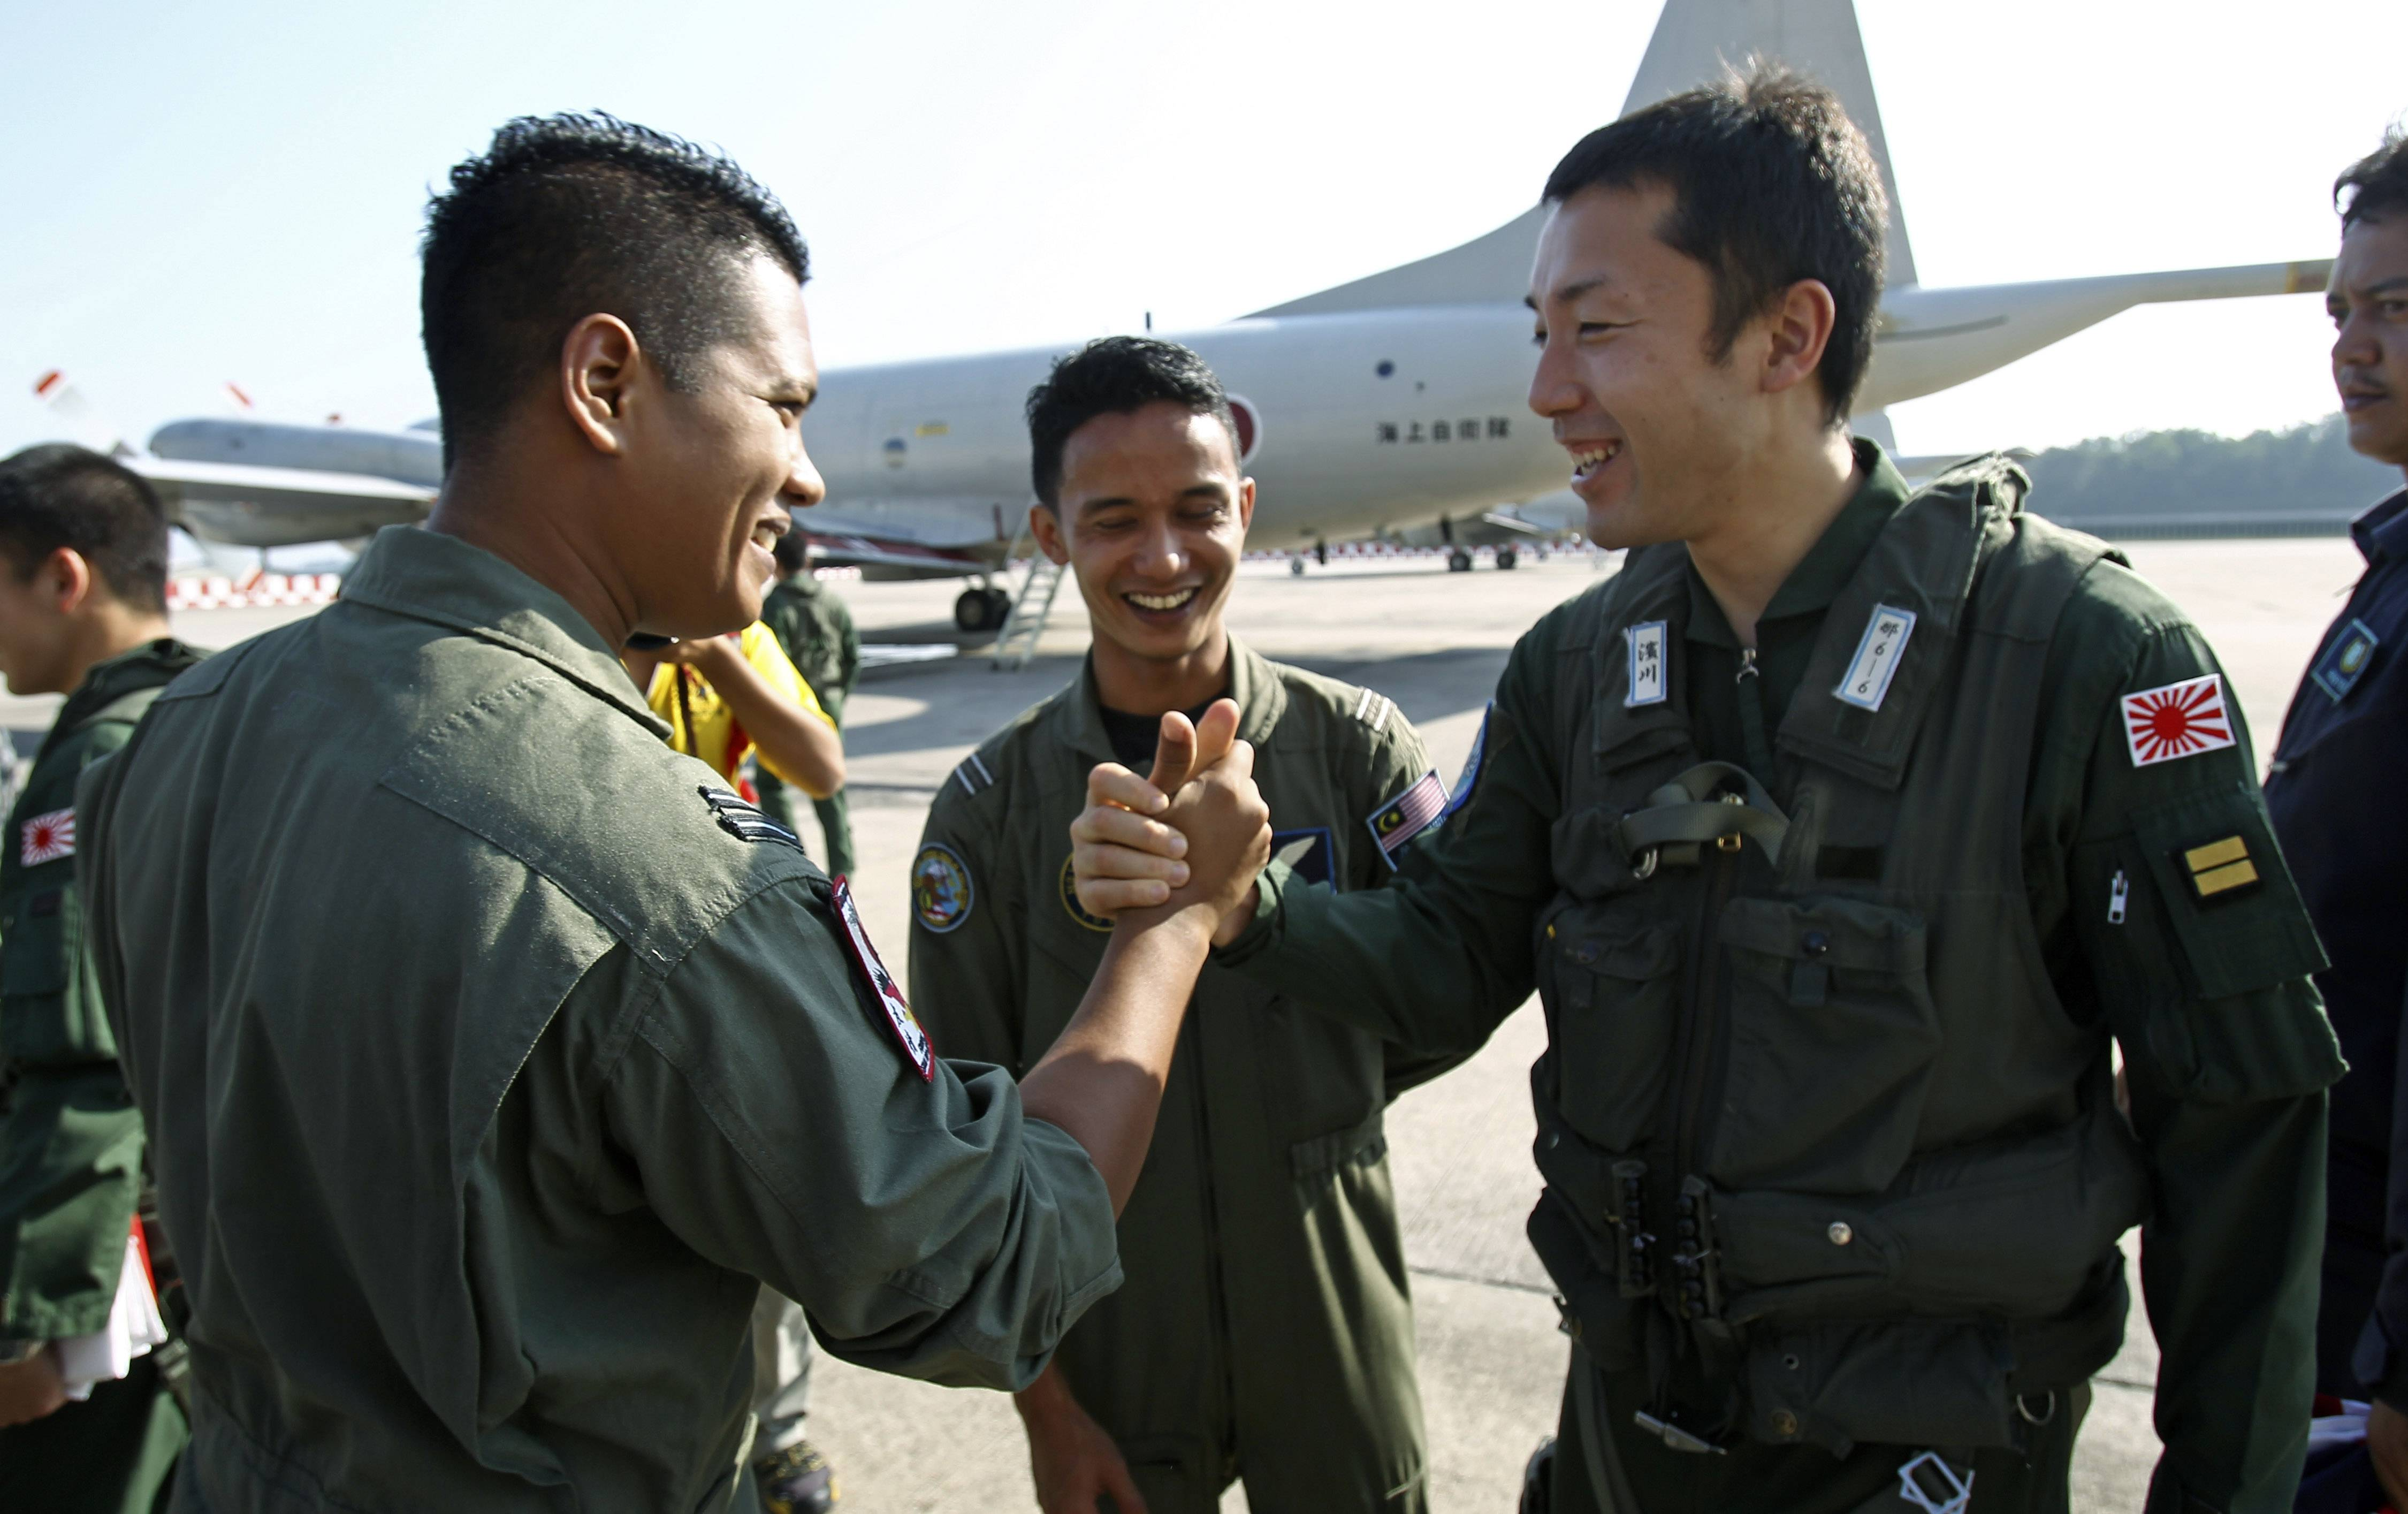 A crew member of Japan's Maritime Self-Defense Force, right, is wished well by a crew member of the Royal Malaysian Air Force before leaving the Royal Malaysian Air Force base for Australia to join a search and rescue operation for the missing Malaysia Airlines, flight MH370, in Subang, Malaysia Sunday. Search planes headed back out to a desolate patch of the southern Indian Ocean on Sunday in hopes of finding answers to the fate of the missing Malaysia Airlines jet, after China released a satellite image showing a large object floating in the search zone.